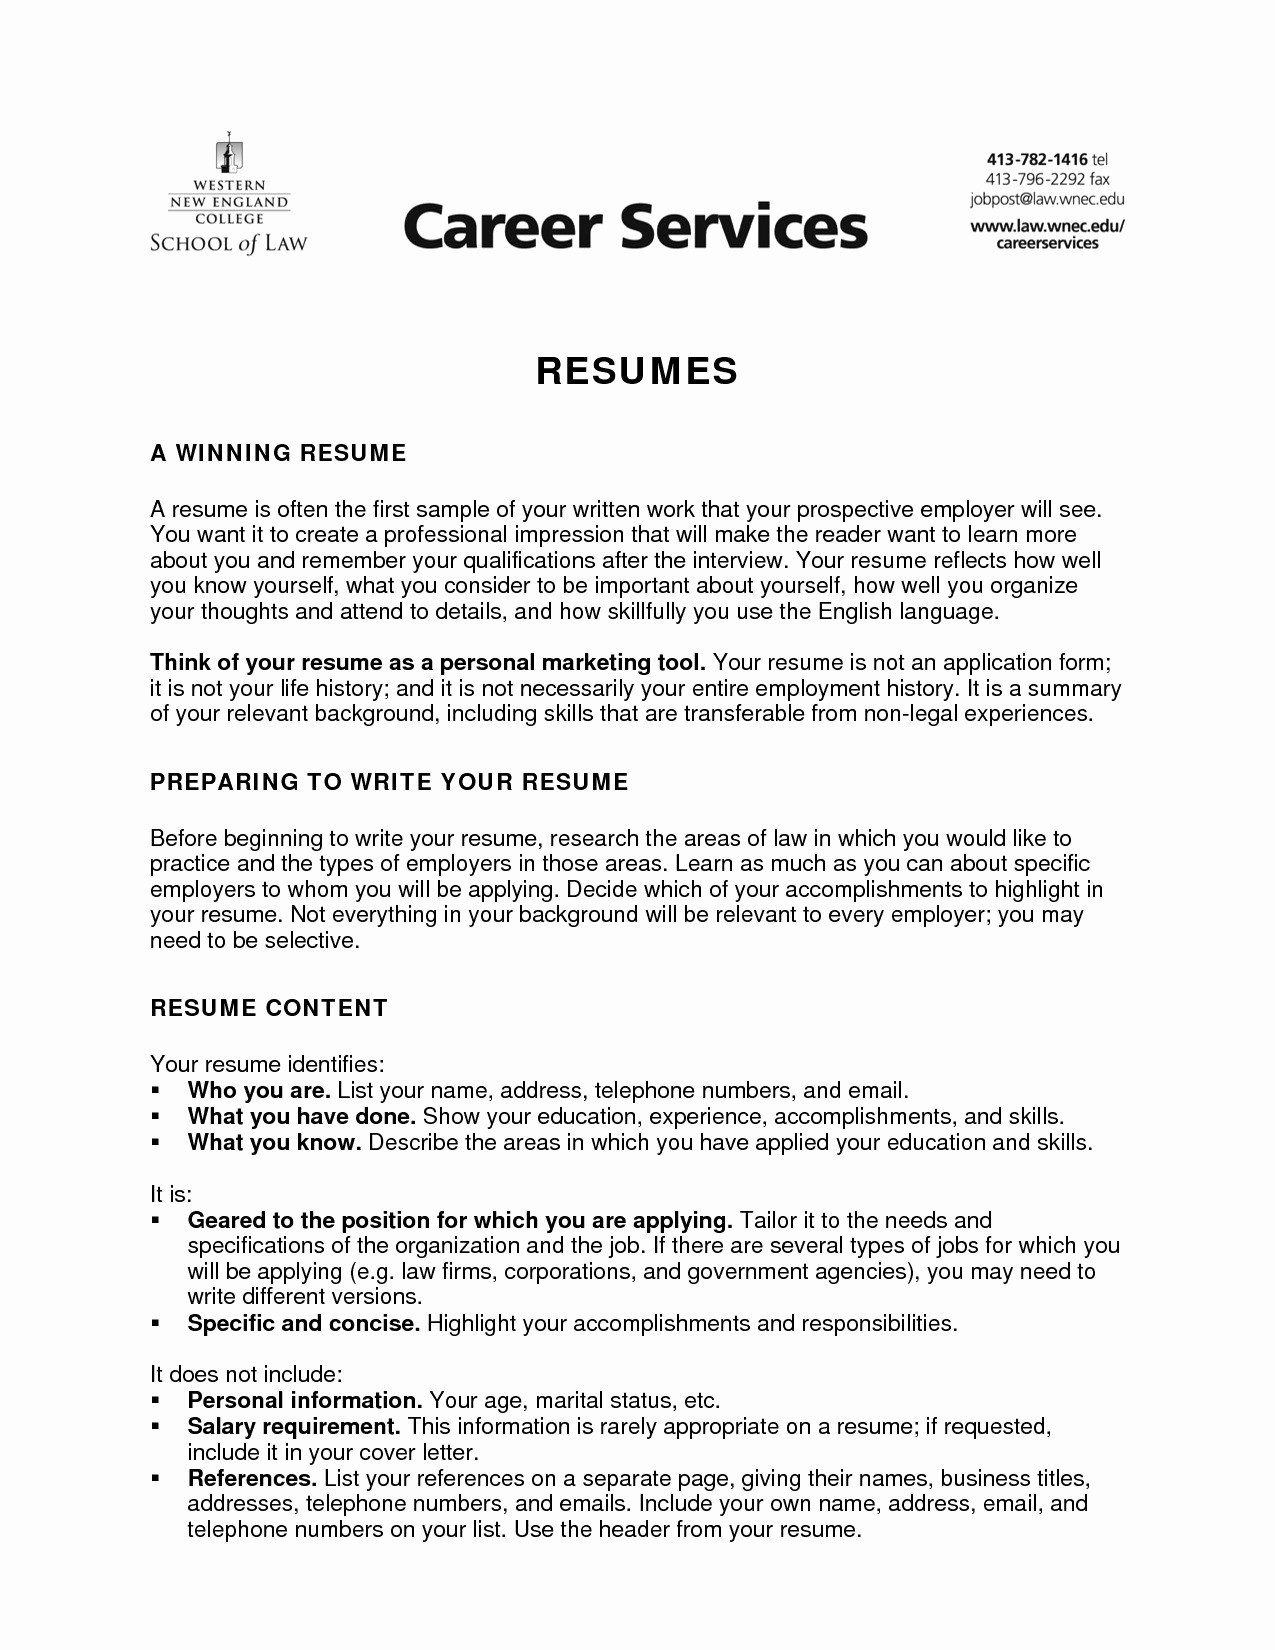 clinical research resume Collection-Clinical Research Resume 9-o